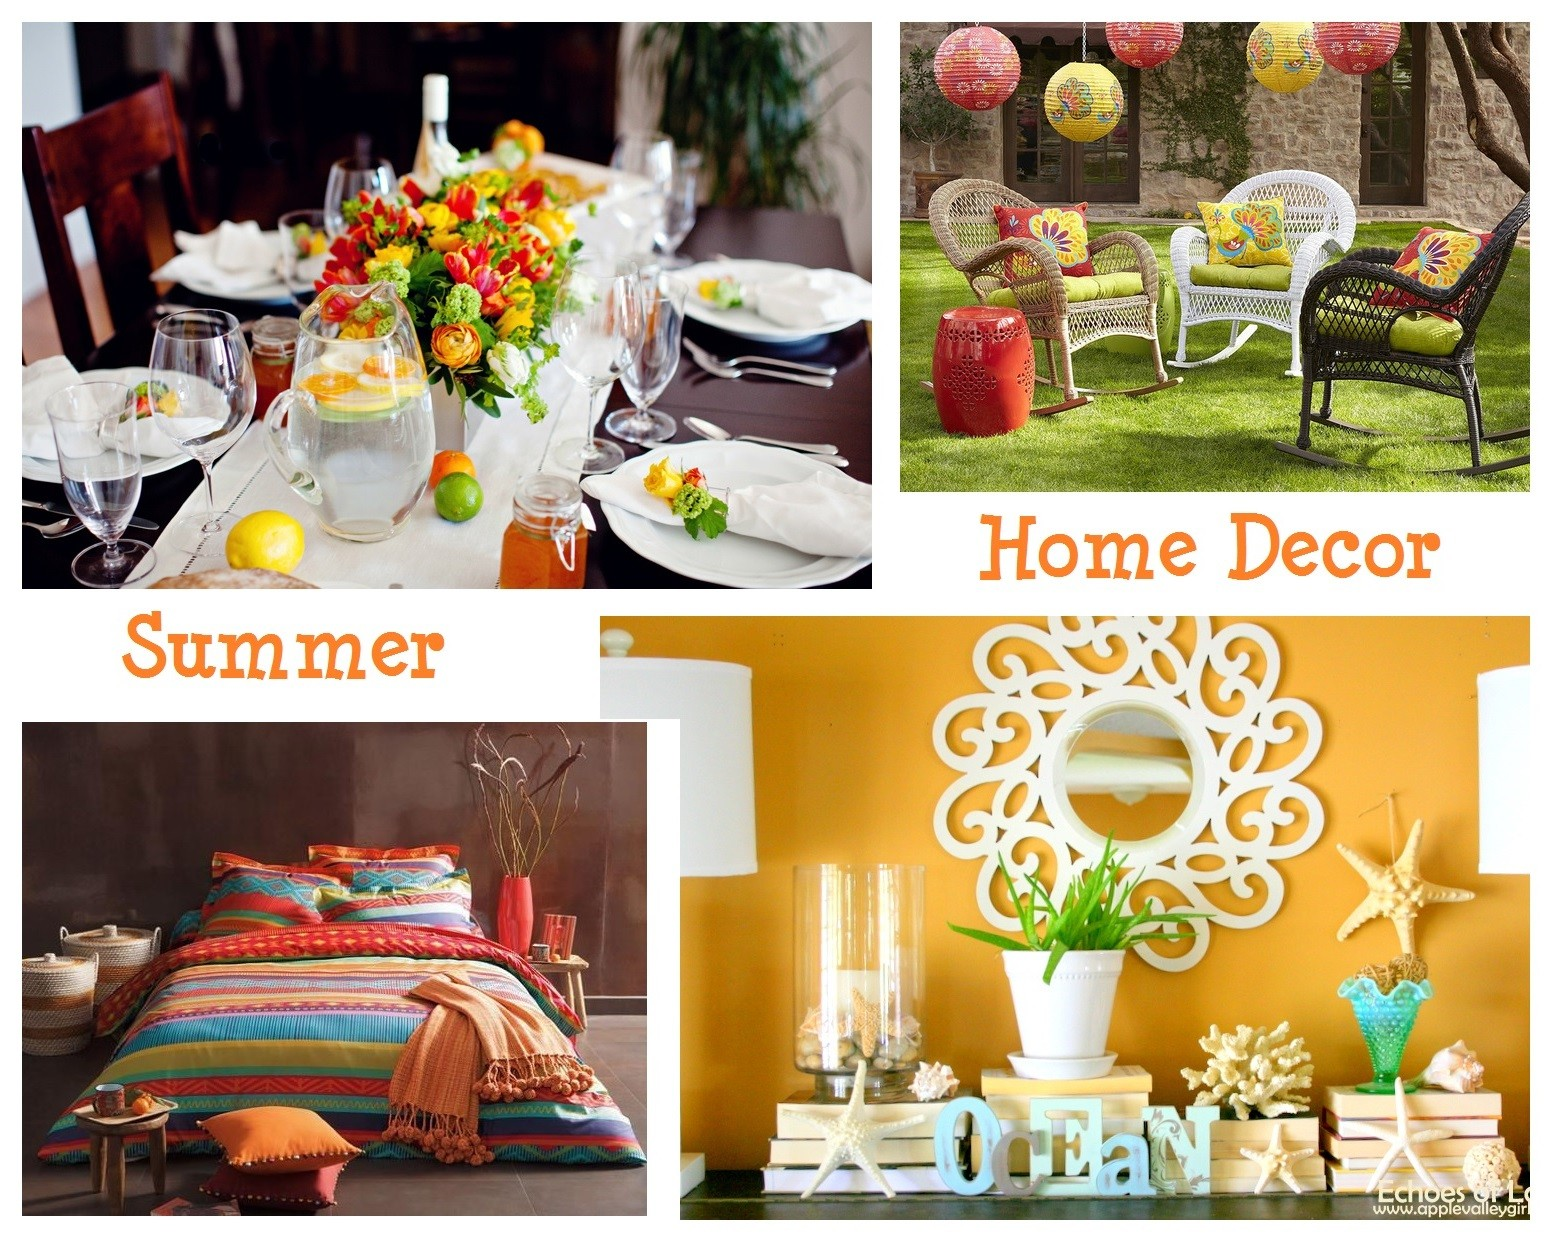 Summer Decorating Ideas 5 simple summer home decor ideas for any space - honey + lime